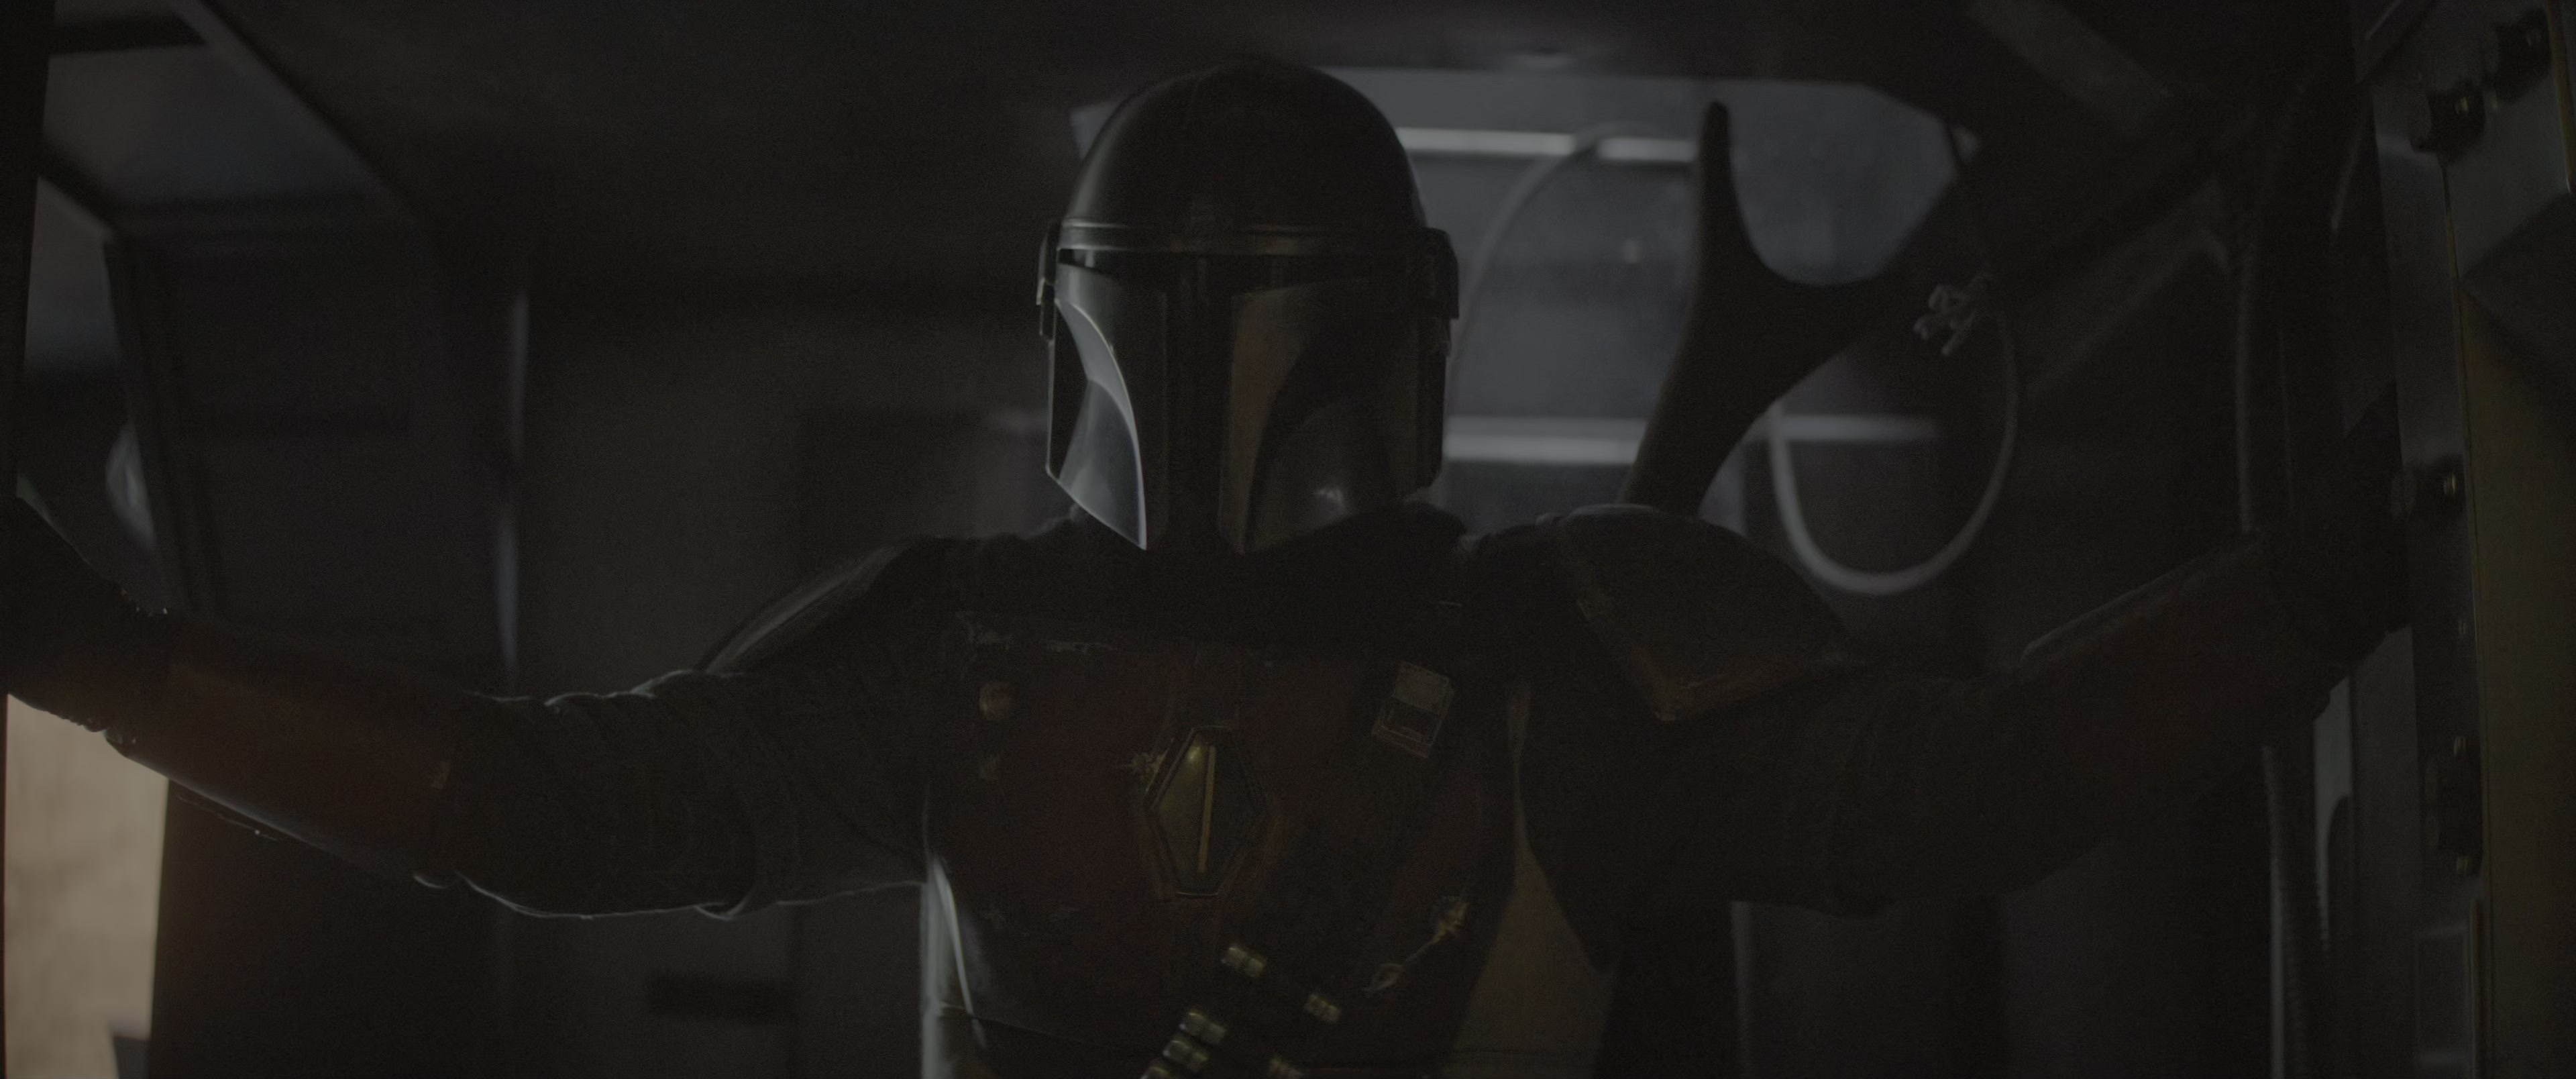 The Mandalorian - s01e02 - The Child 208.jpg